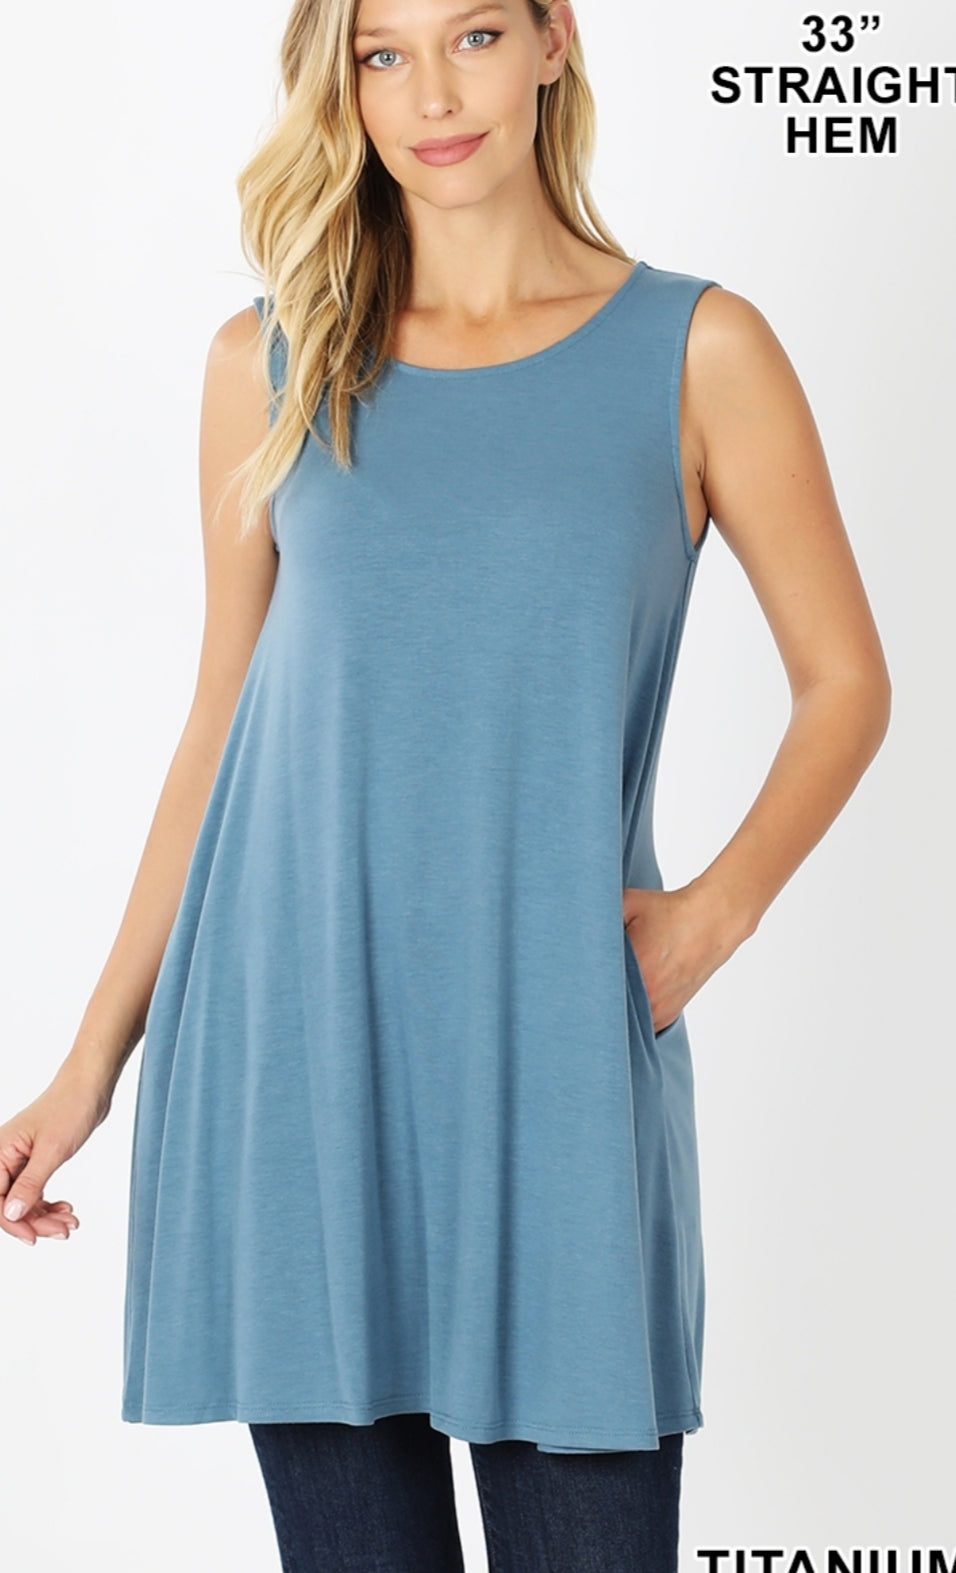 The RORY Titanium Blue Solid Tank Tunic